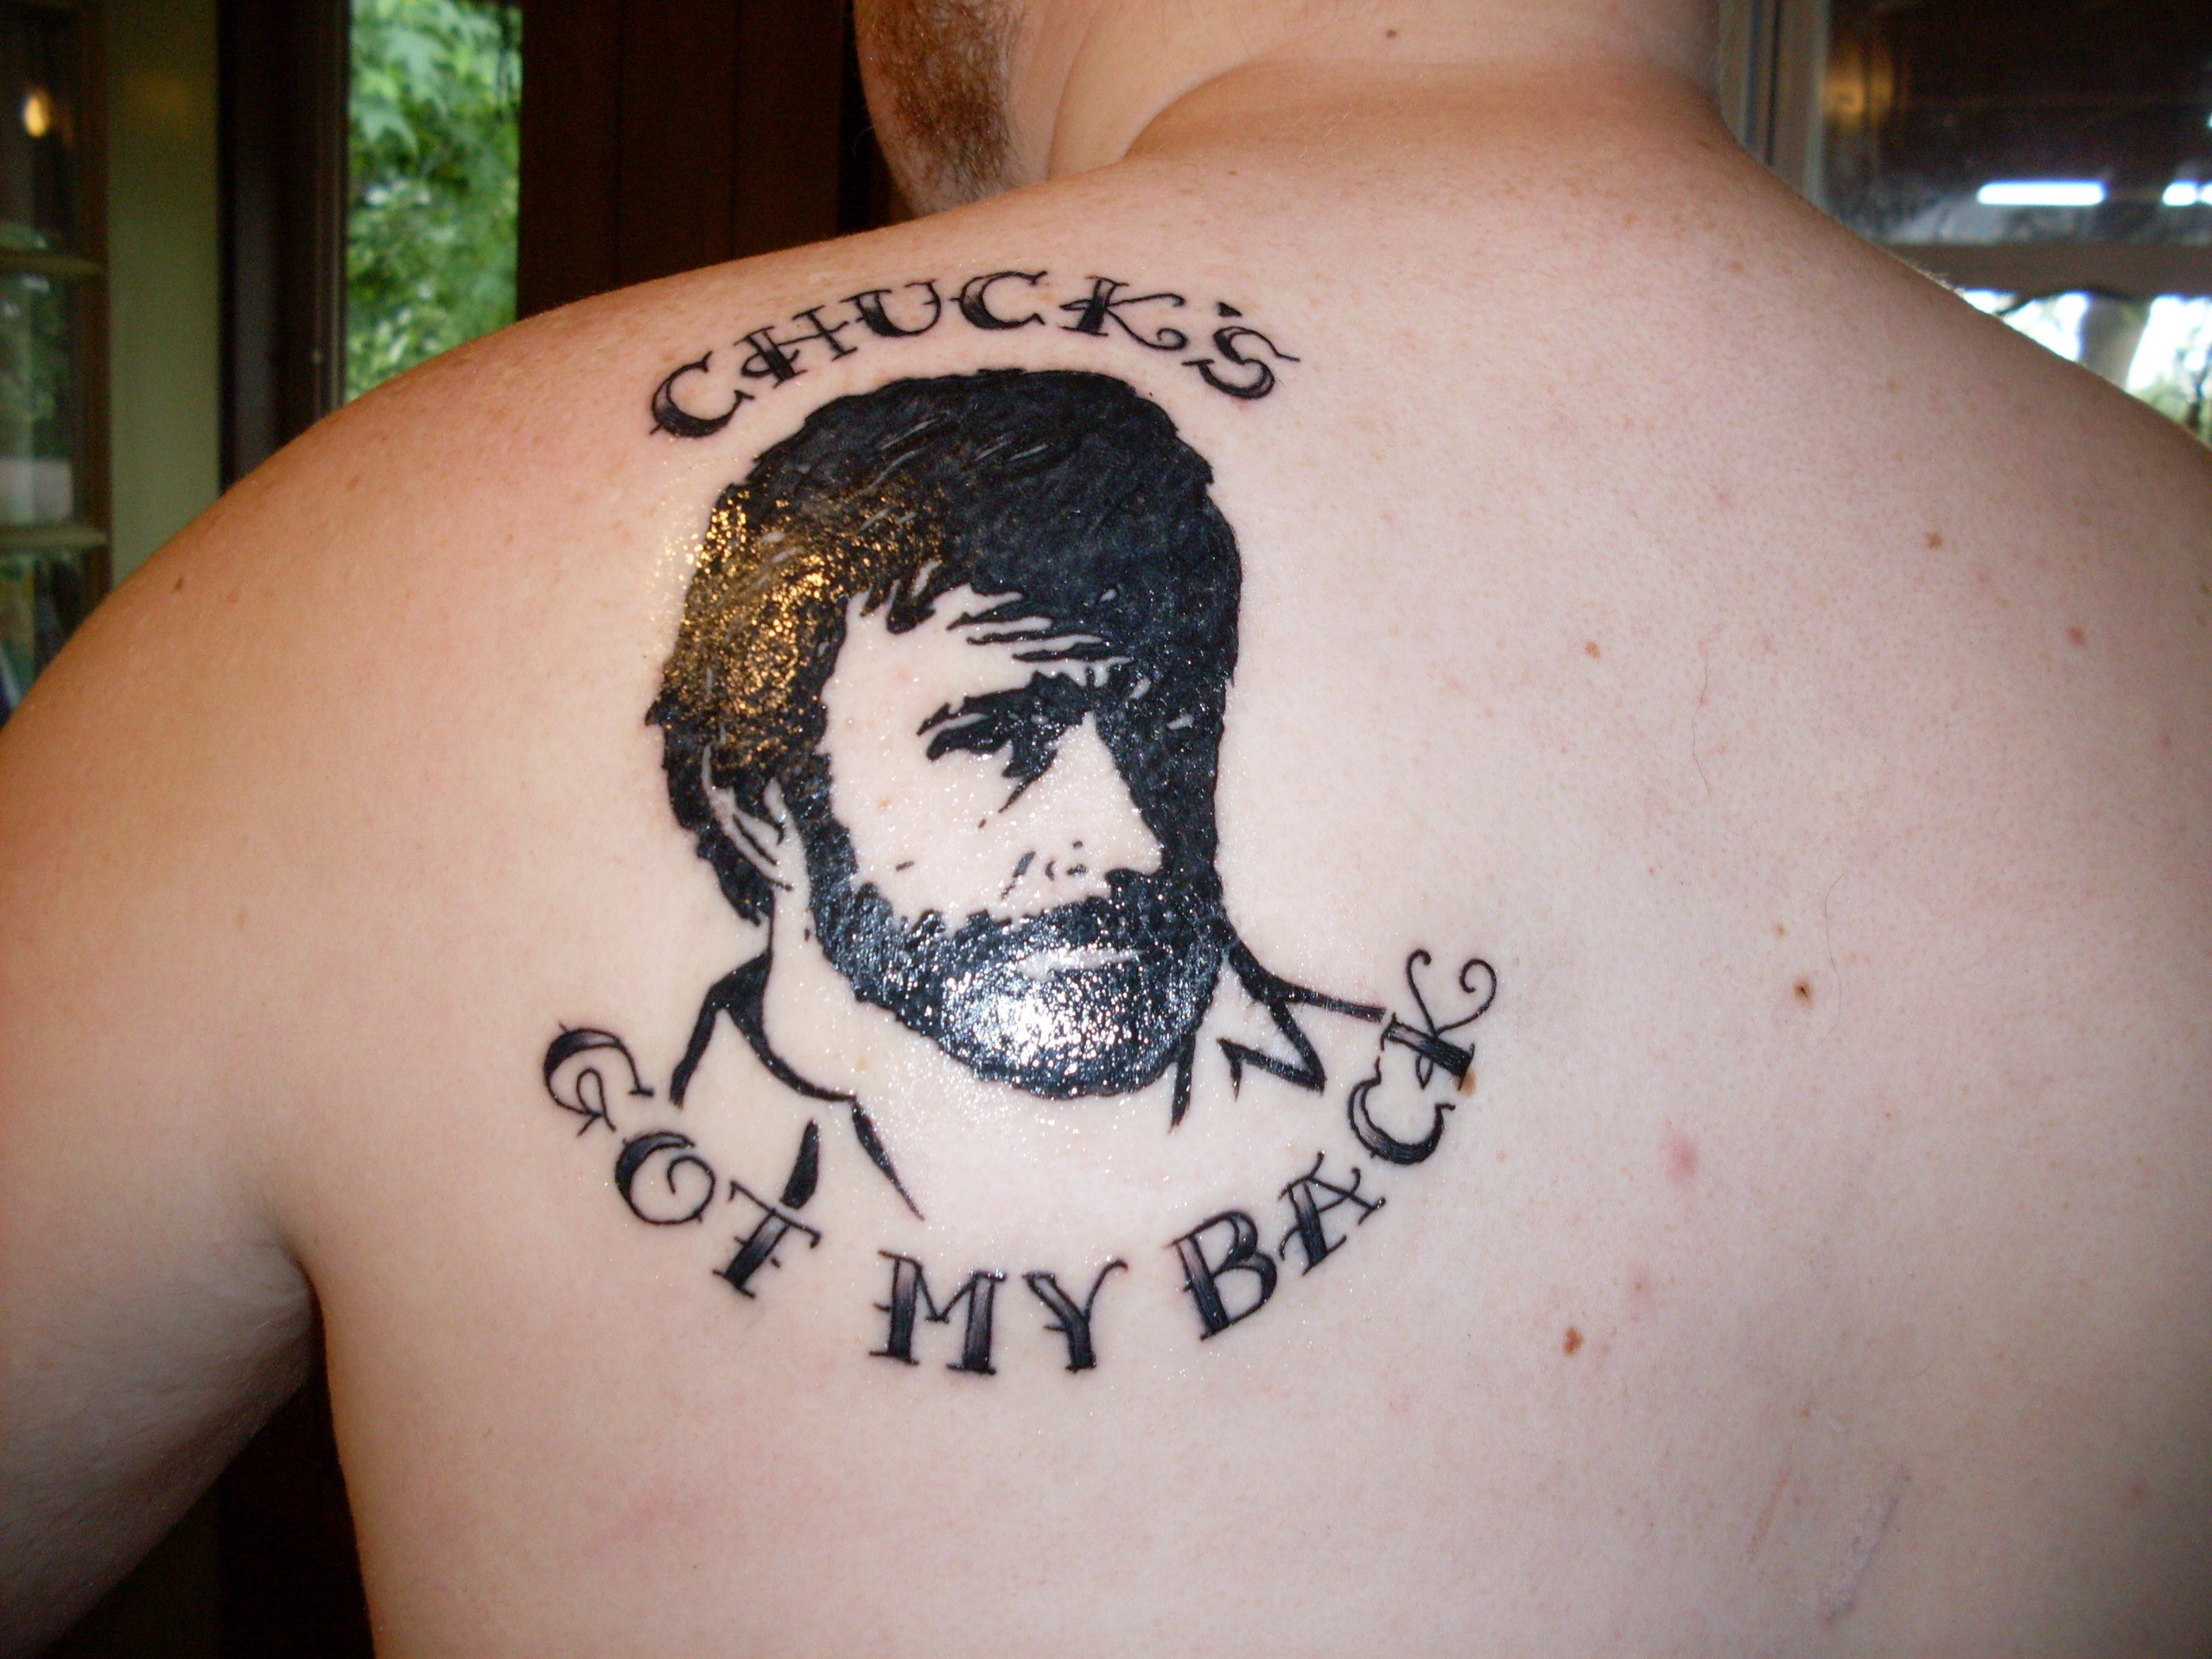 2560x1920 Chuck Norris images chuck's got my back HD wallpaper and background photos